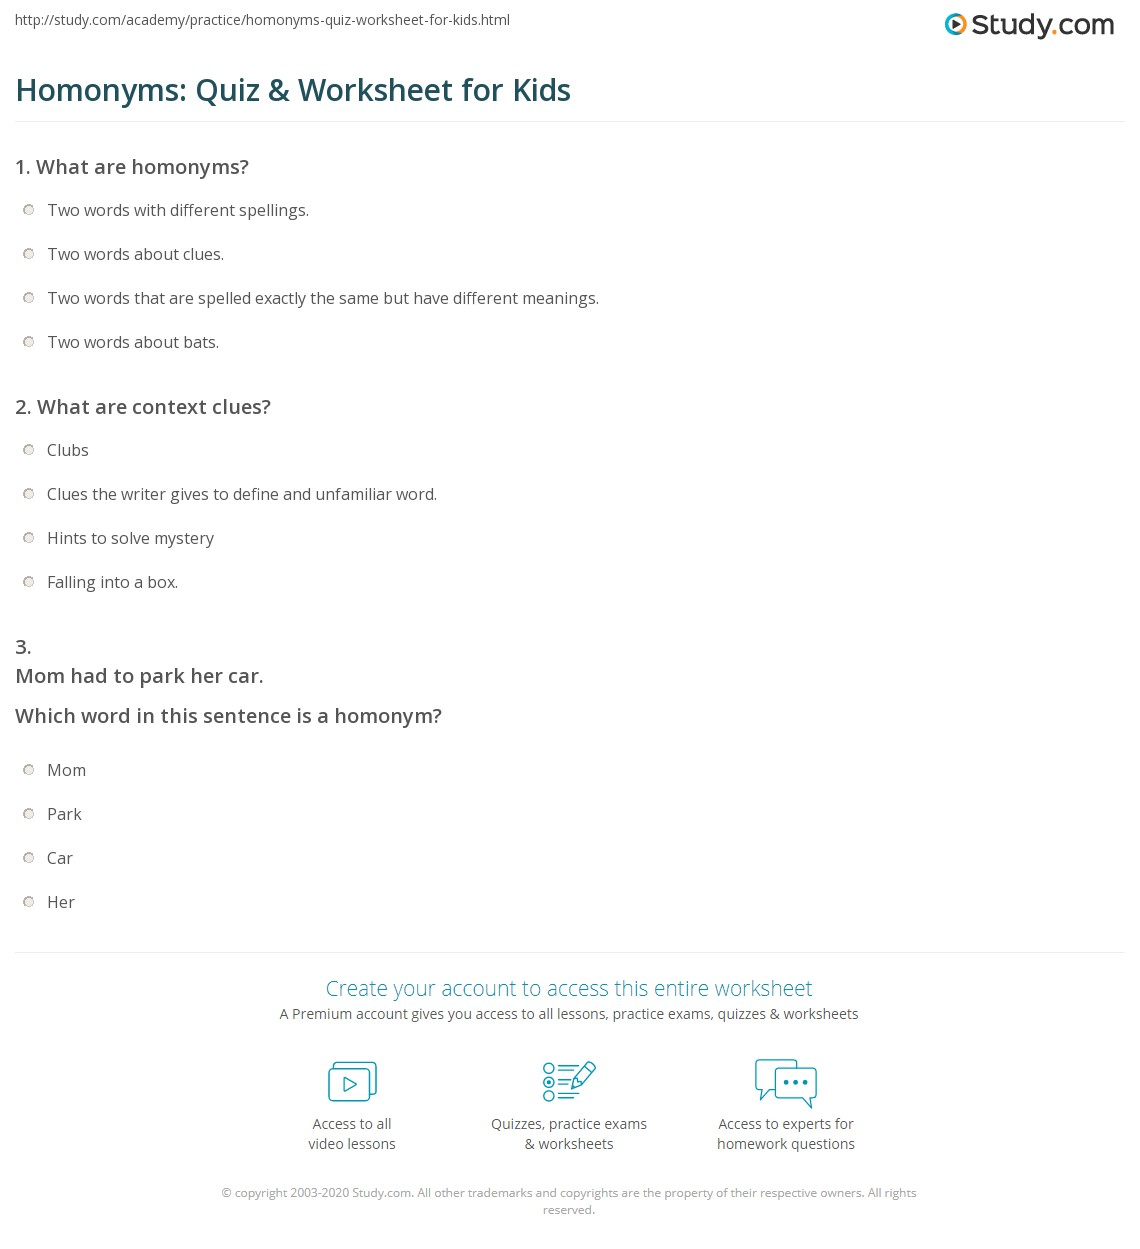 Homonyms Quiz Worksheet For Kids Study